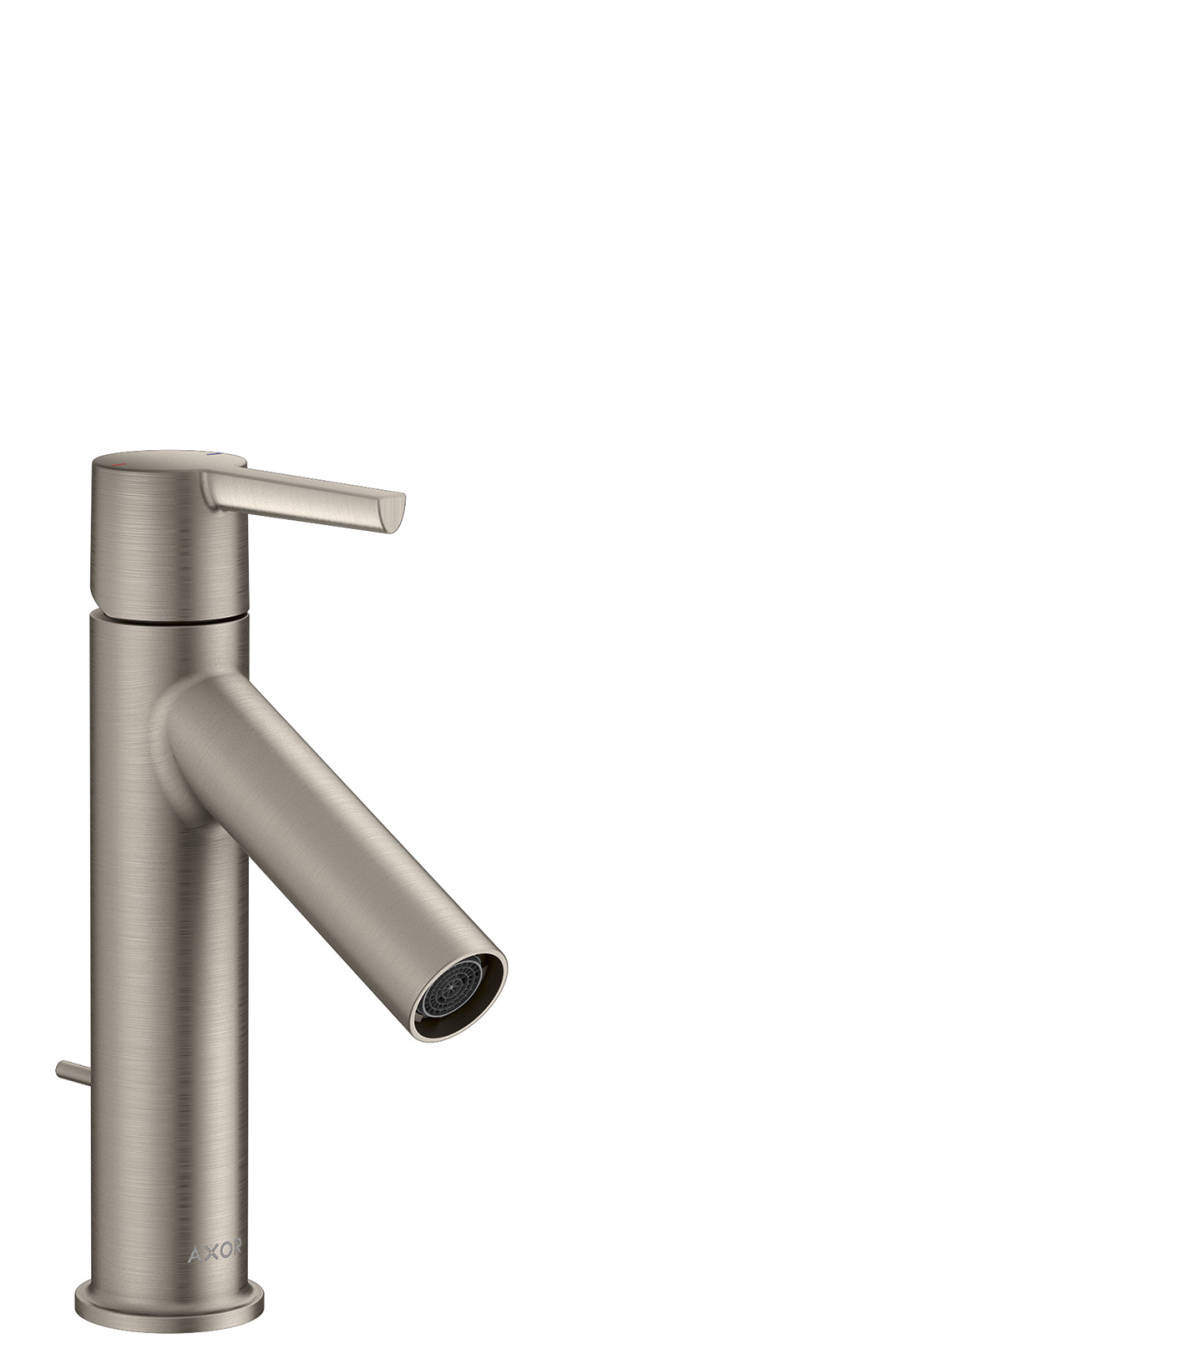 Single lever basin mixer 100 with lever handle and pop-up waste set, Stainless Steel Optic, 10001800